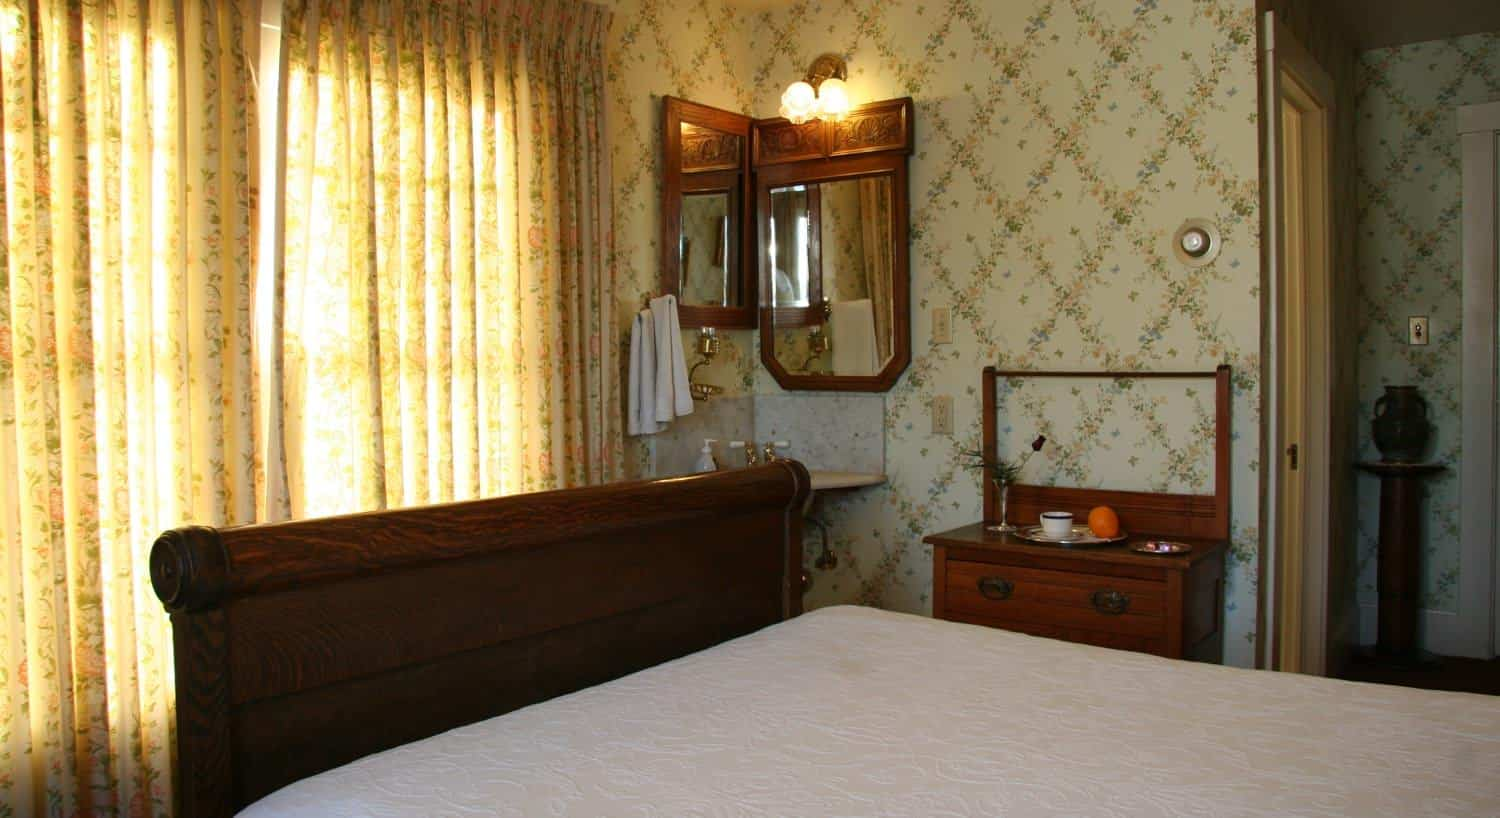 Oak guest room with pastel floral wallpaper, carved bed, corner washbasin and window with floral curtains